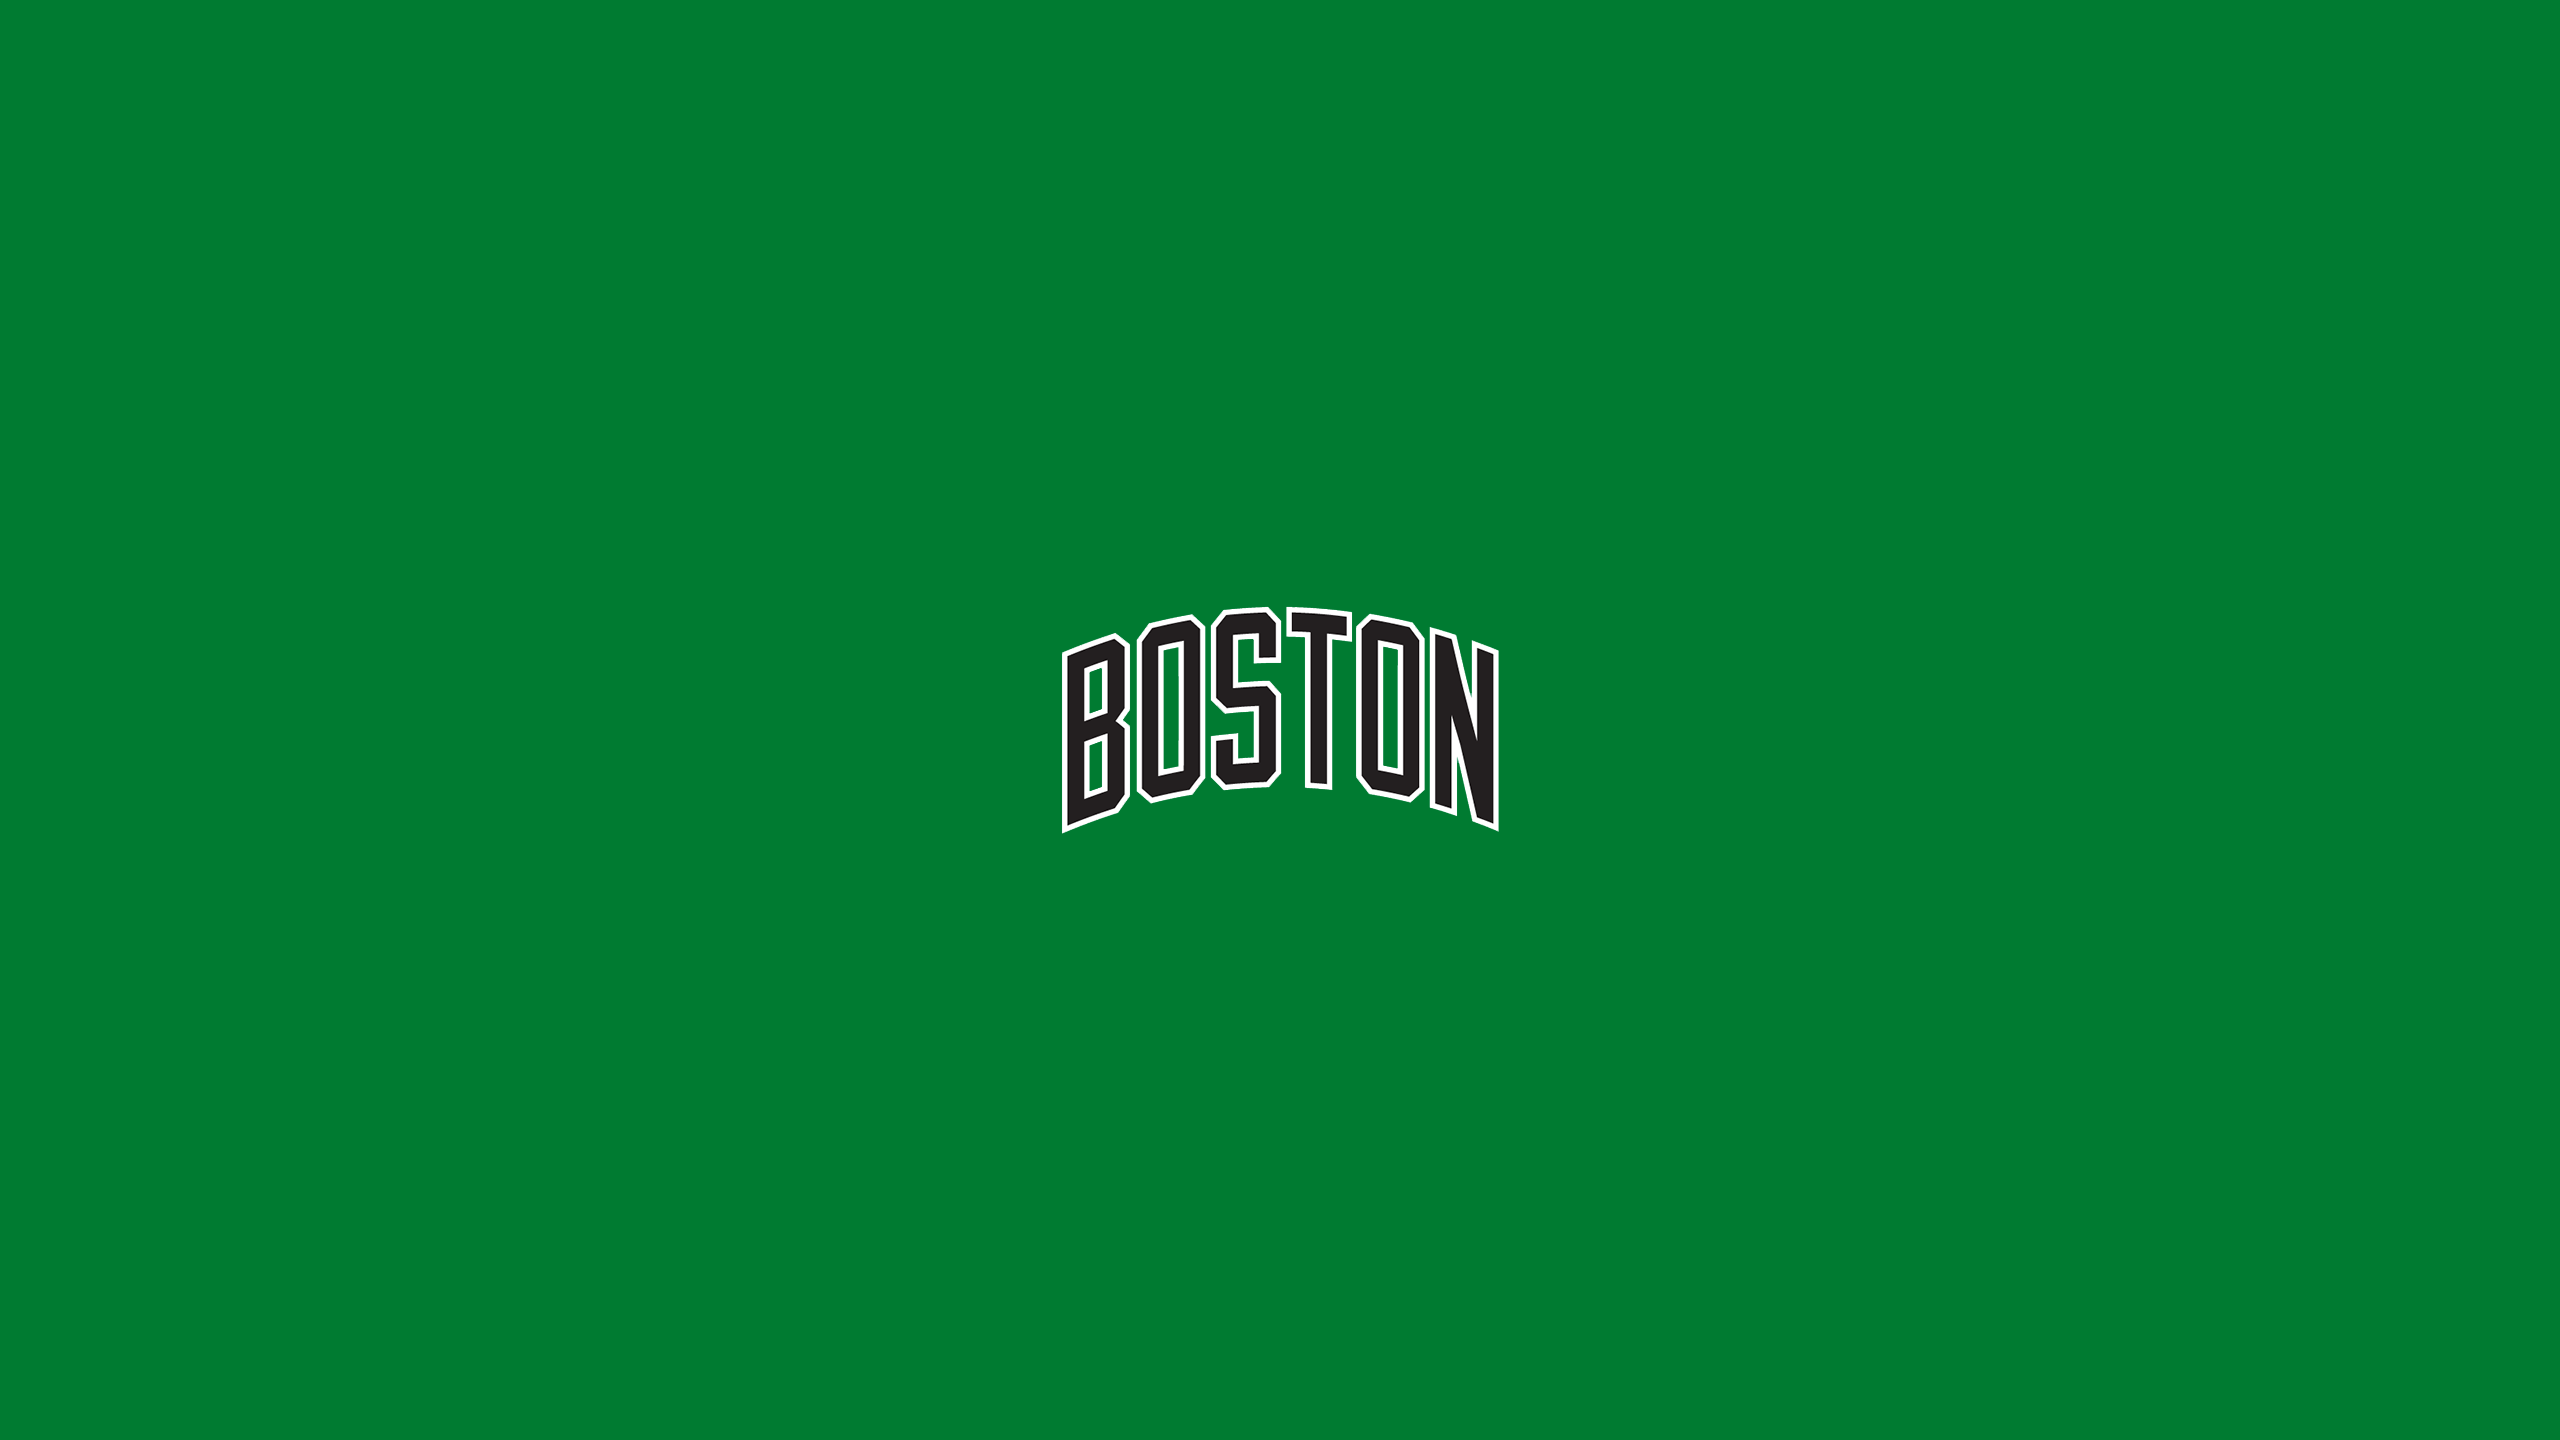 Boston Celtics (Away - Alt)